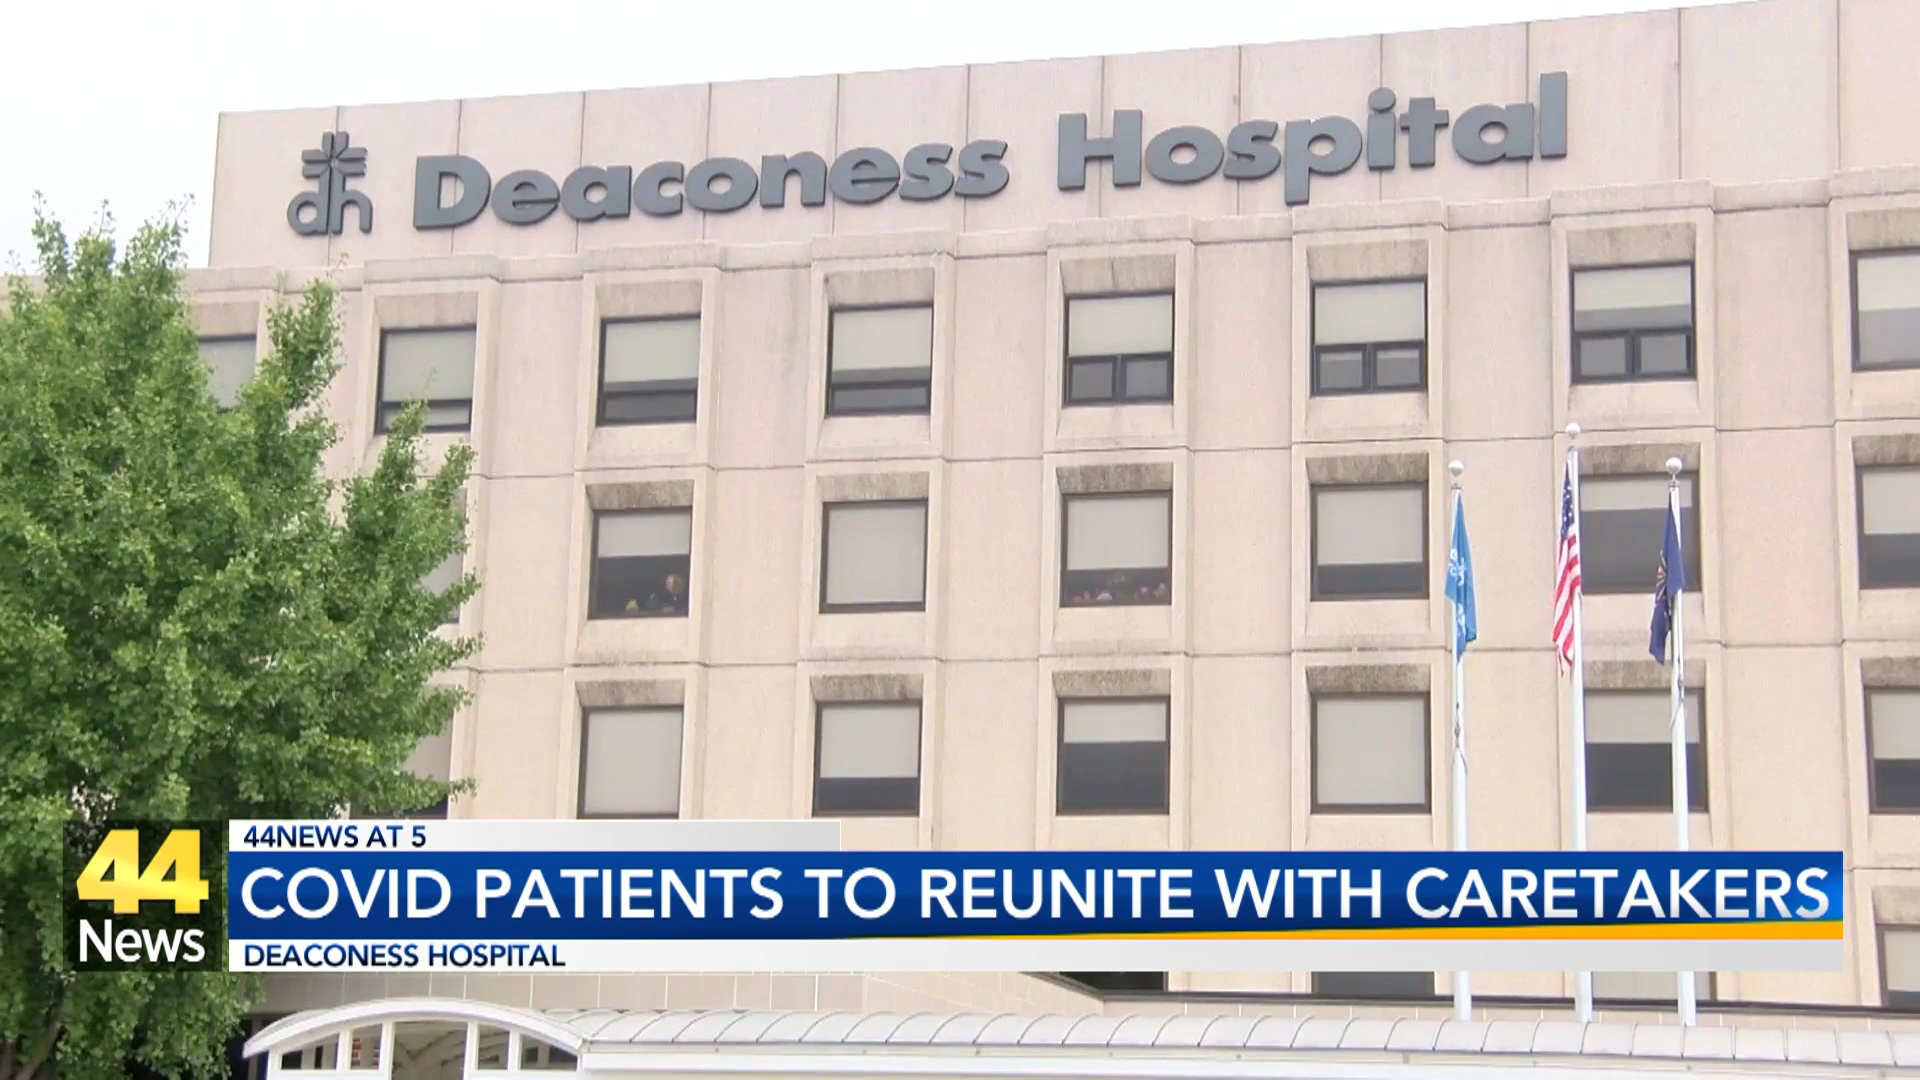 Image for Covid Patients to Reunite with Caretakers